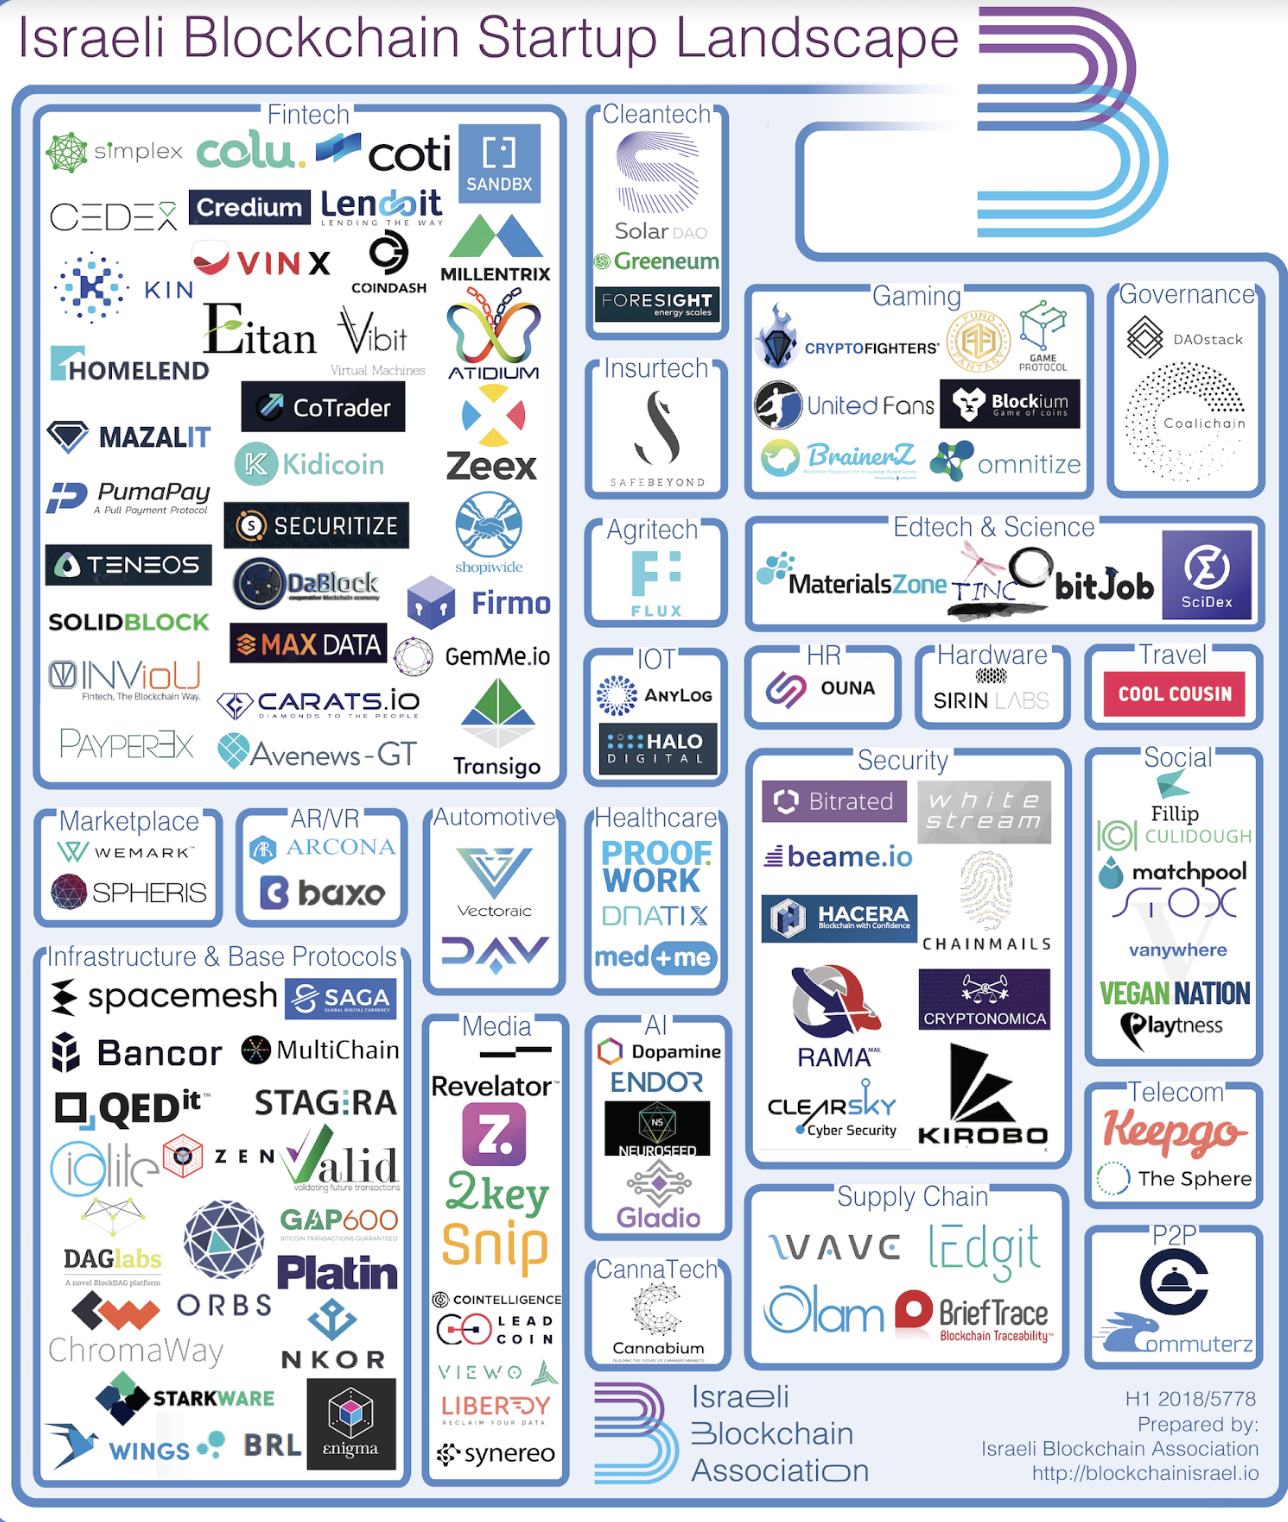 As a picture is worth a a thousand words, I'll let the graphic below speak  to the extraordinary level of activity in the Israeli Crypto ecosystem: